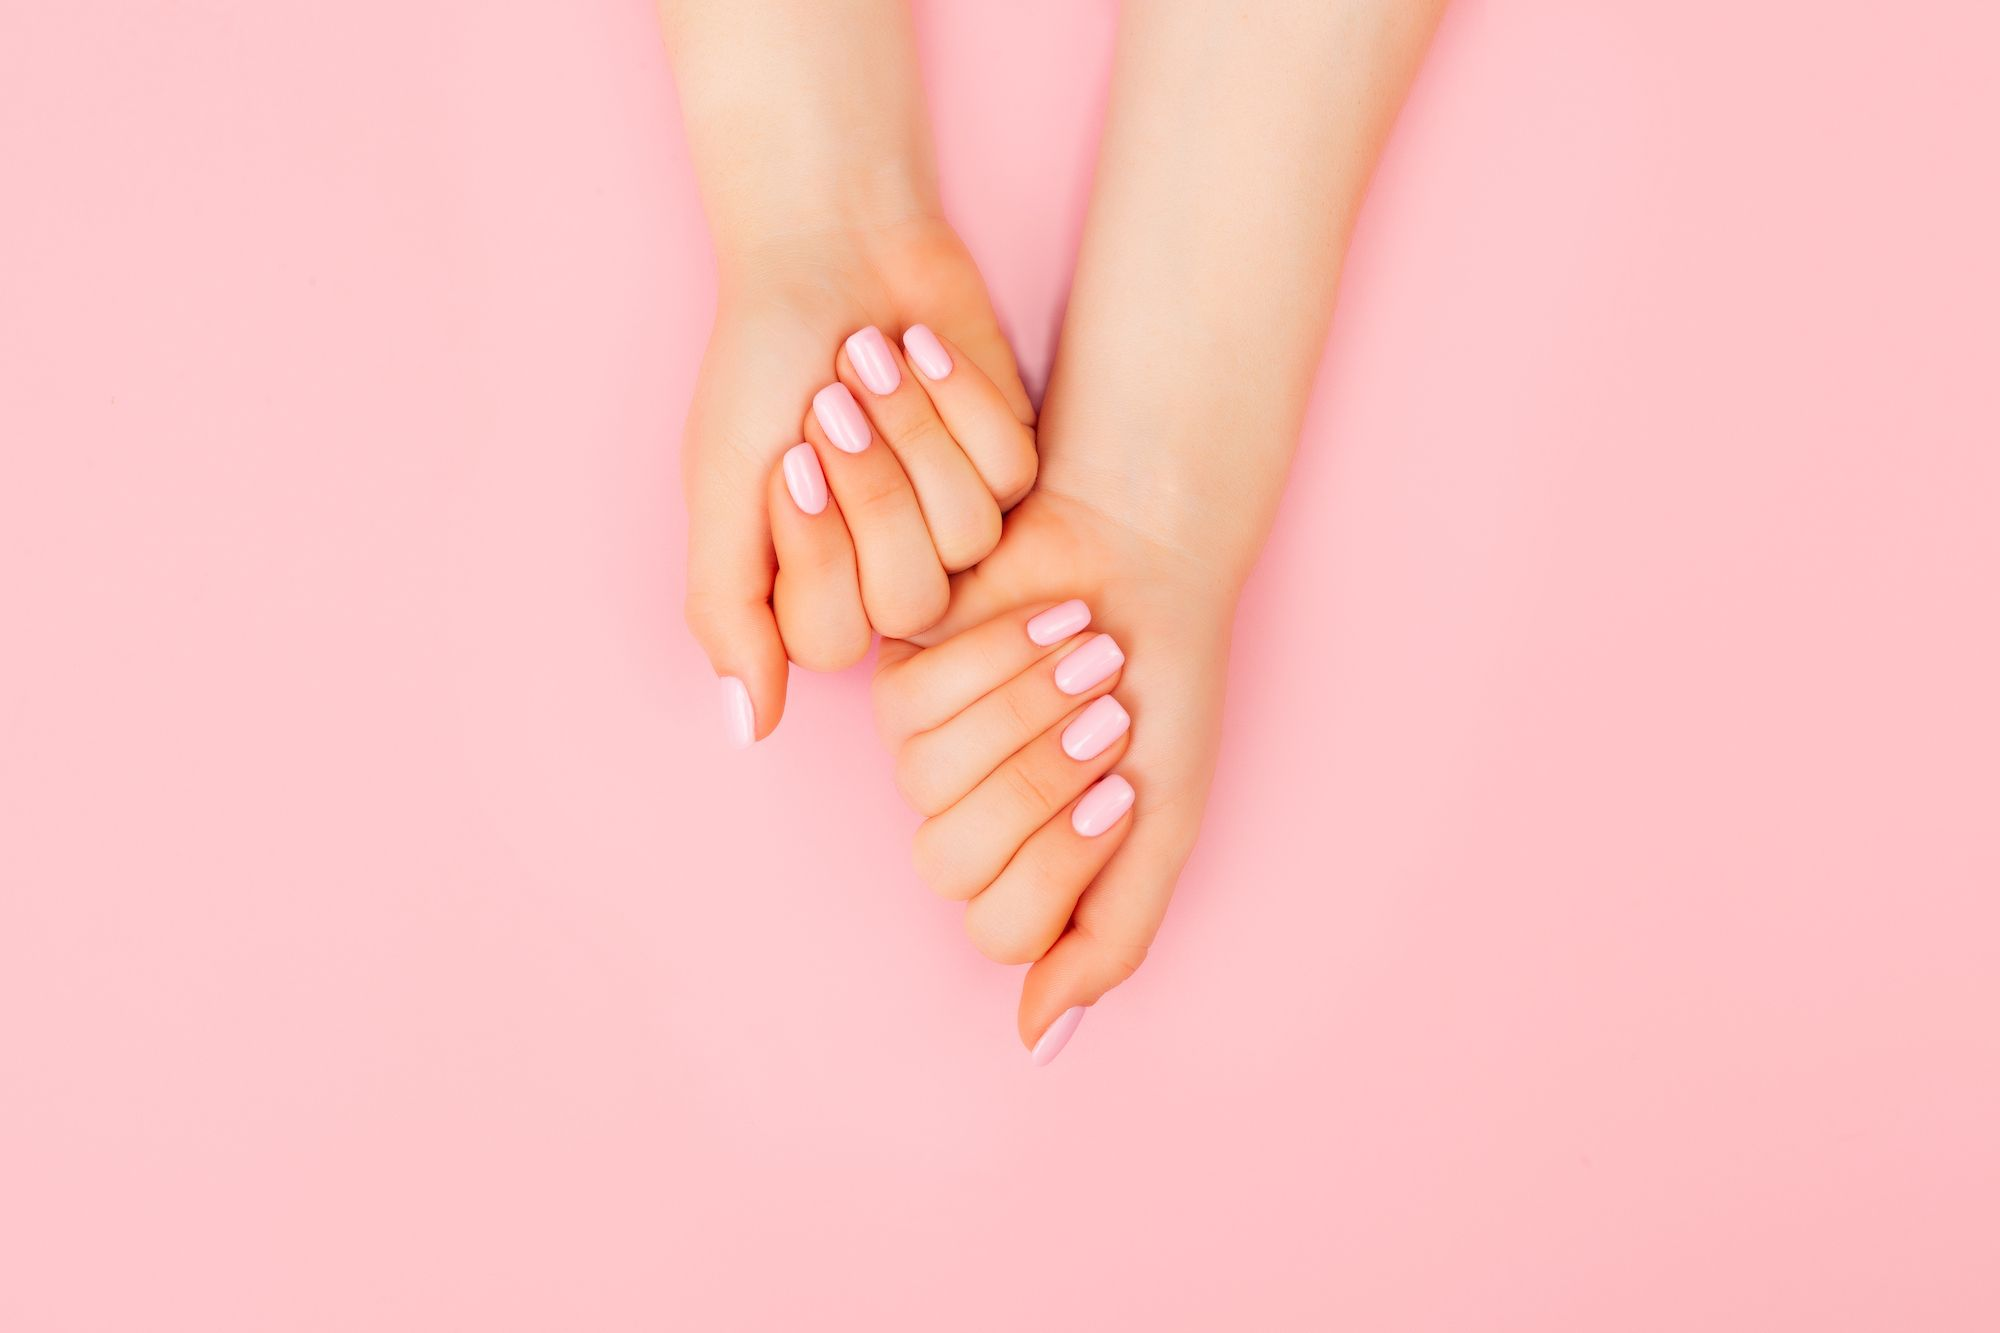 How To Achieve A Flawless Gel Manicure At Home